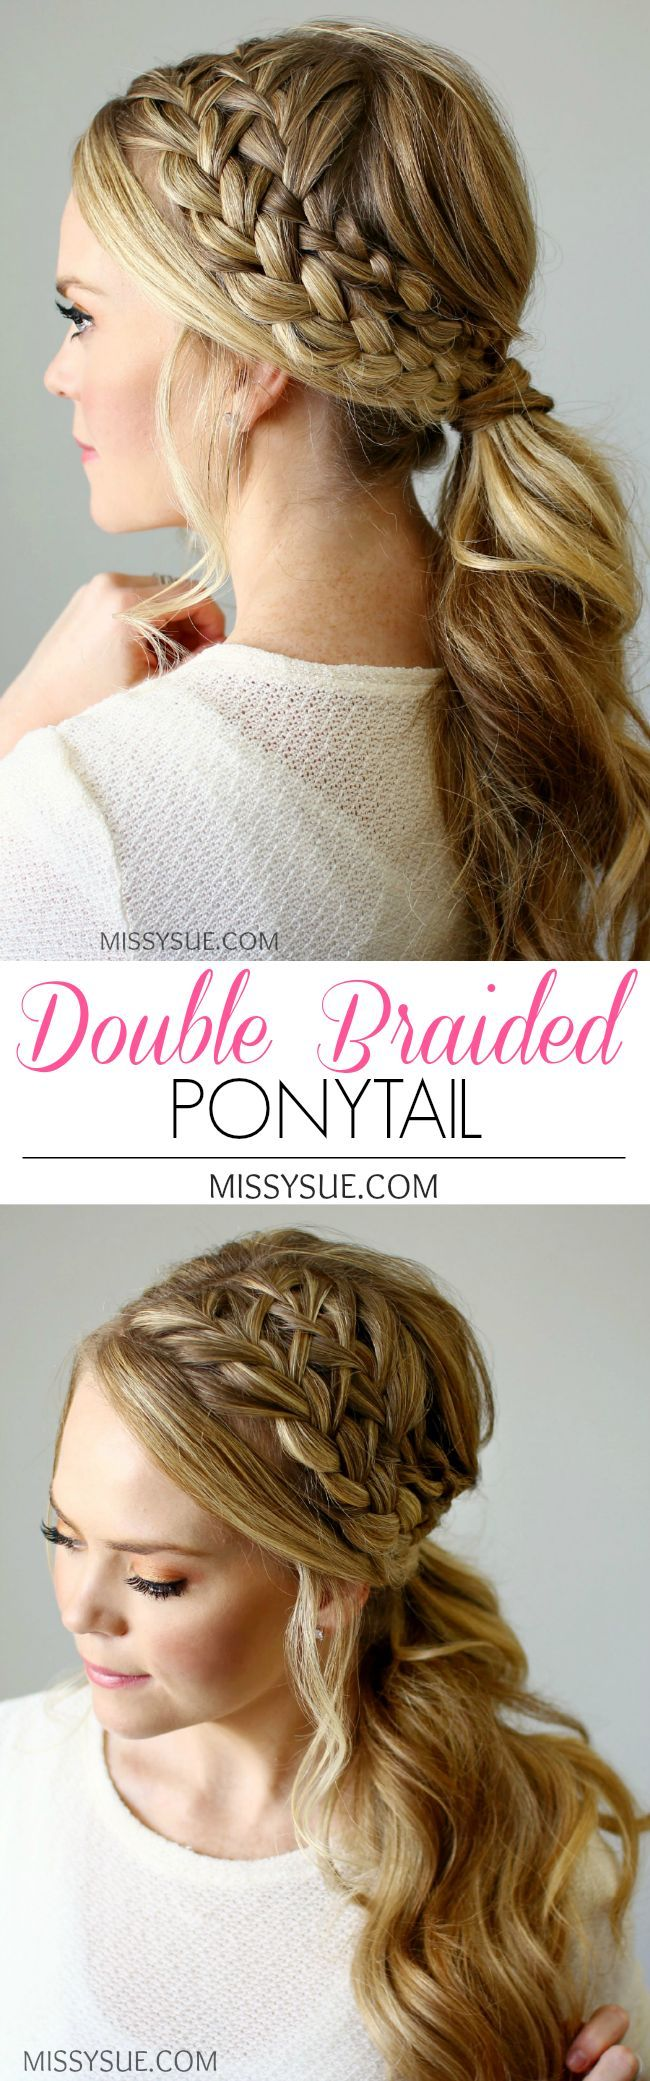 awesome Double Braided Ponytail by http://www.dana-haircuts.xyz/braided-hairstyles/double-braided-ponytail/